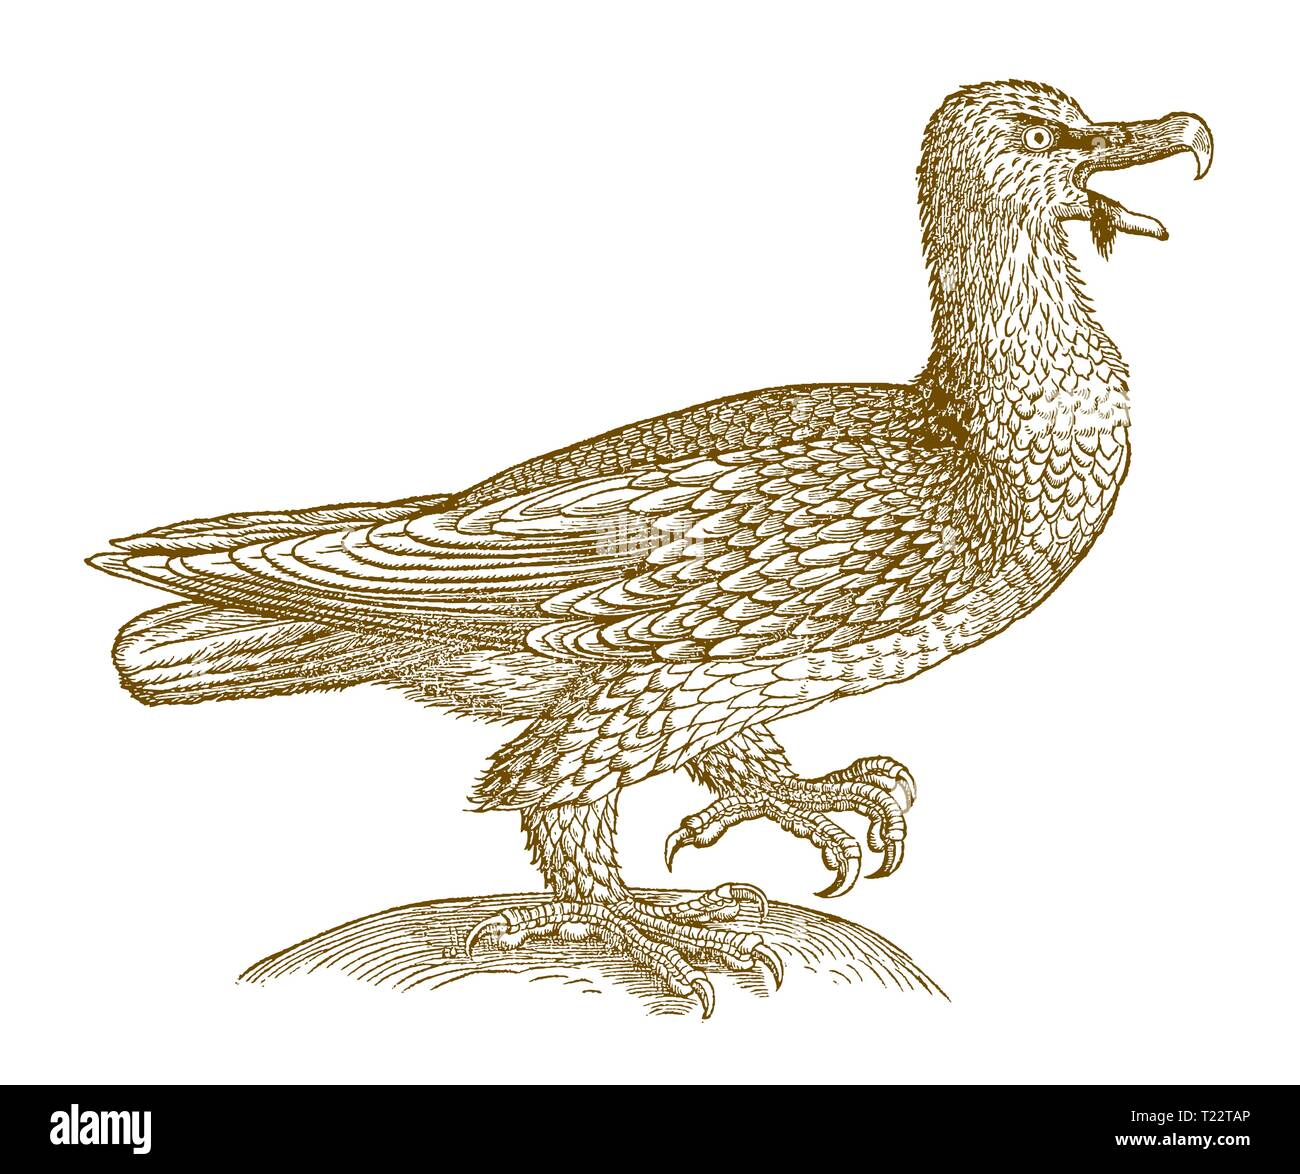 Bearded vulture (gypaetus barbatus) in side view. Illustration after a historic woodcut from the 16th century - Stock Image